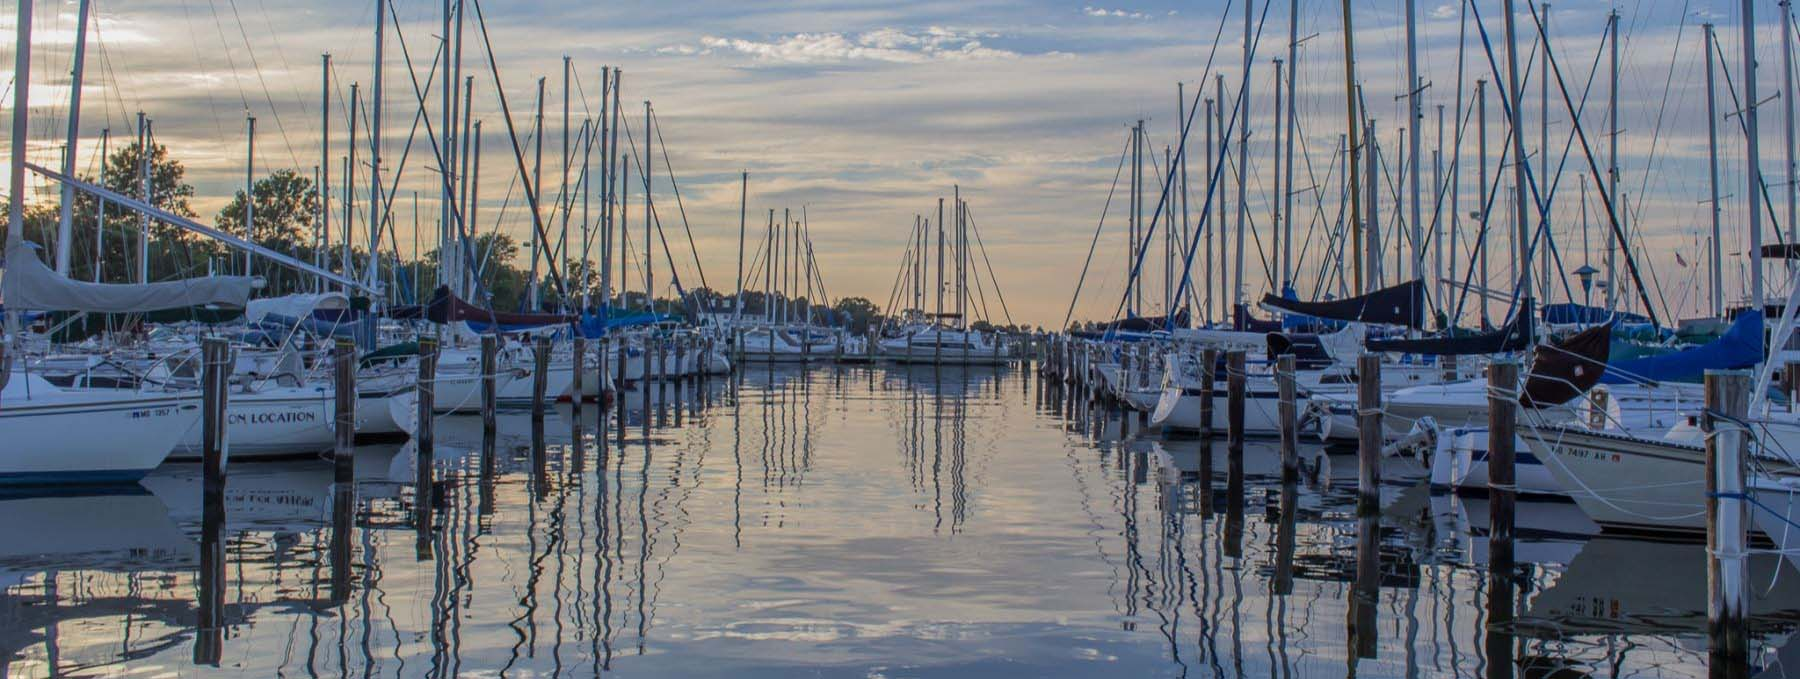 row of boats in a marina at sunset